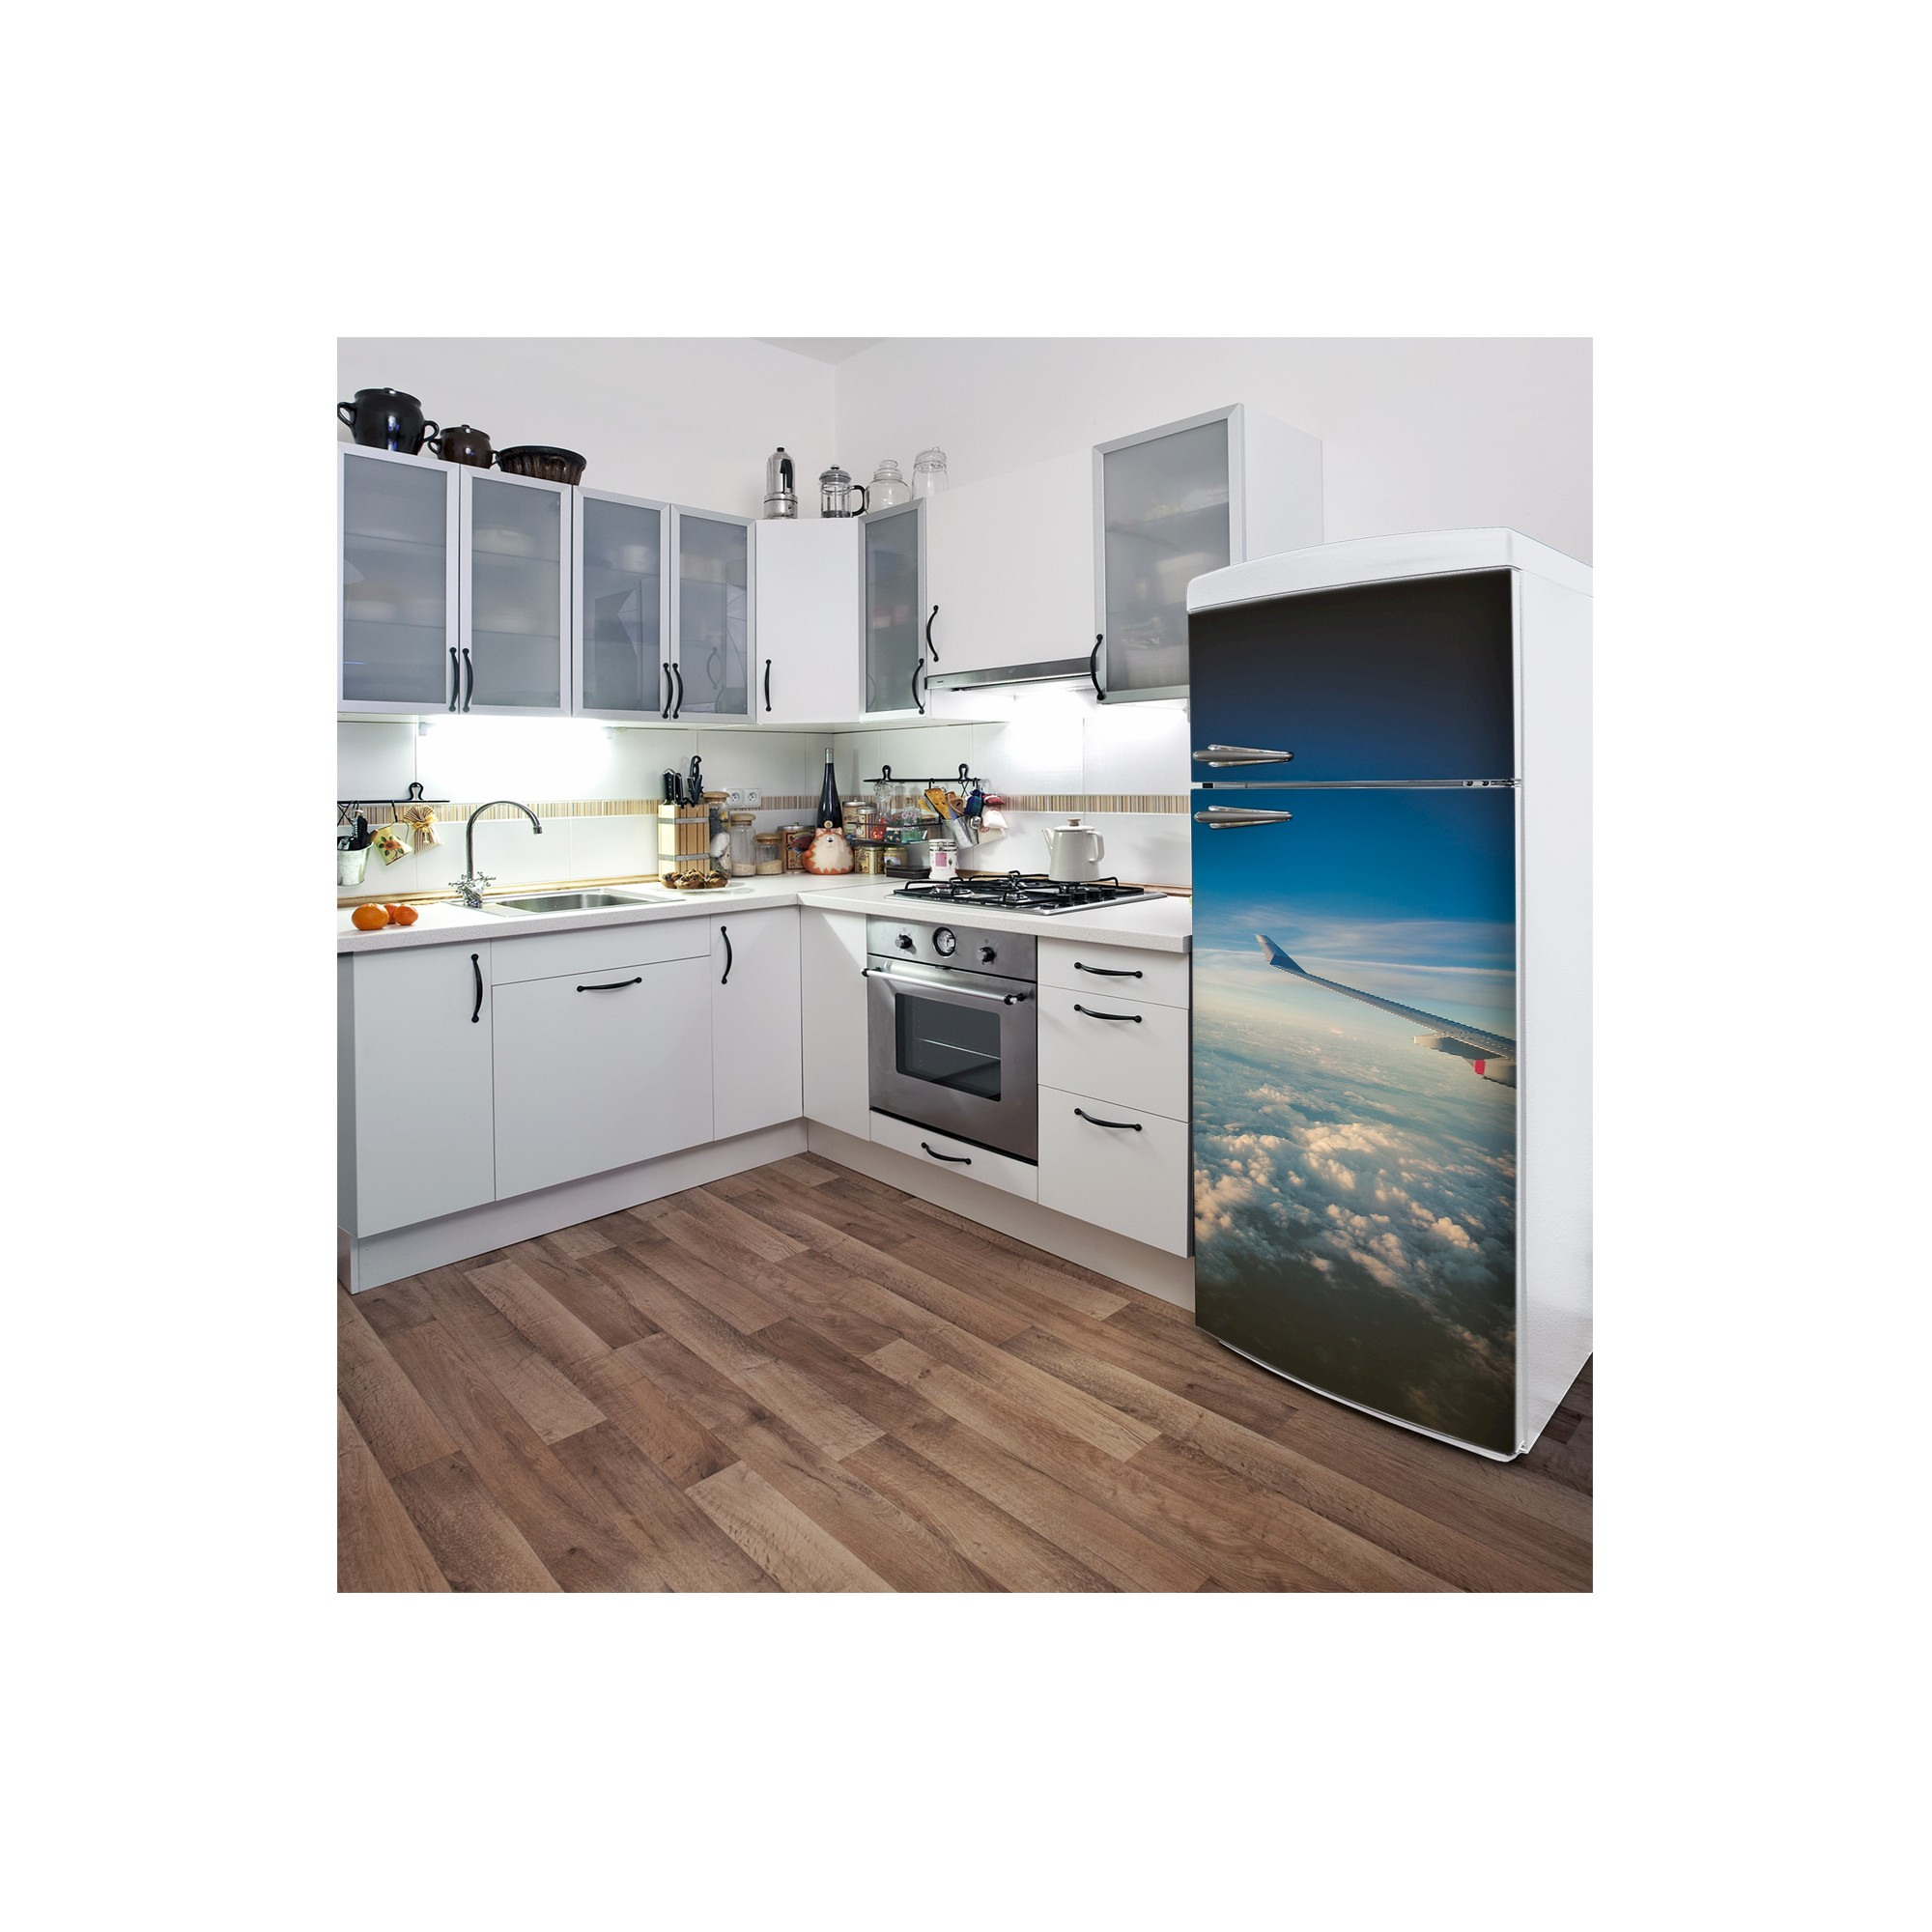 Leave fridge wall decal wall decals and products